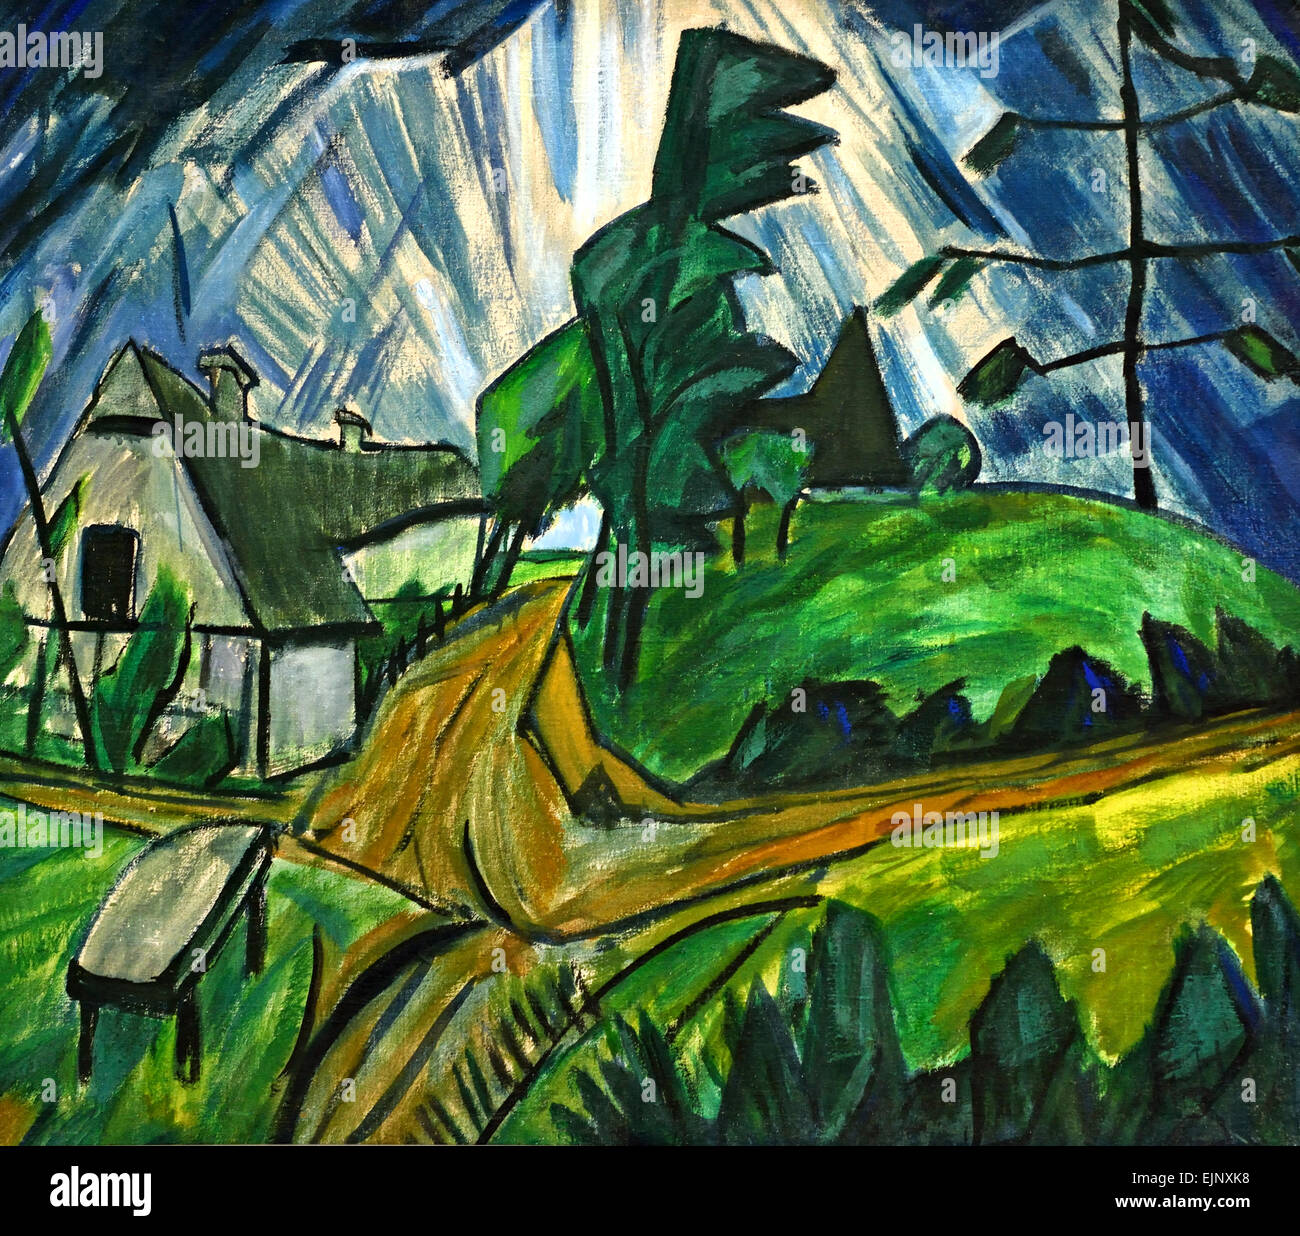 ernst ludwig kirchner 1880 1938 german germany stock photo 80387196